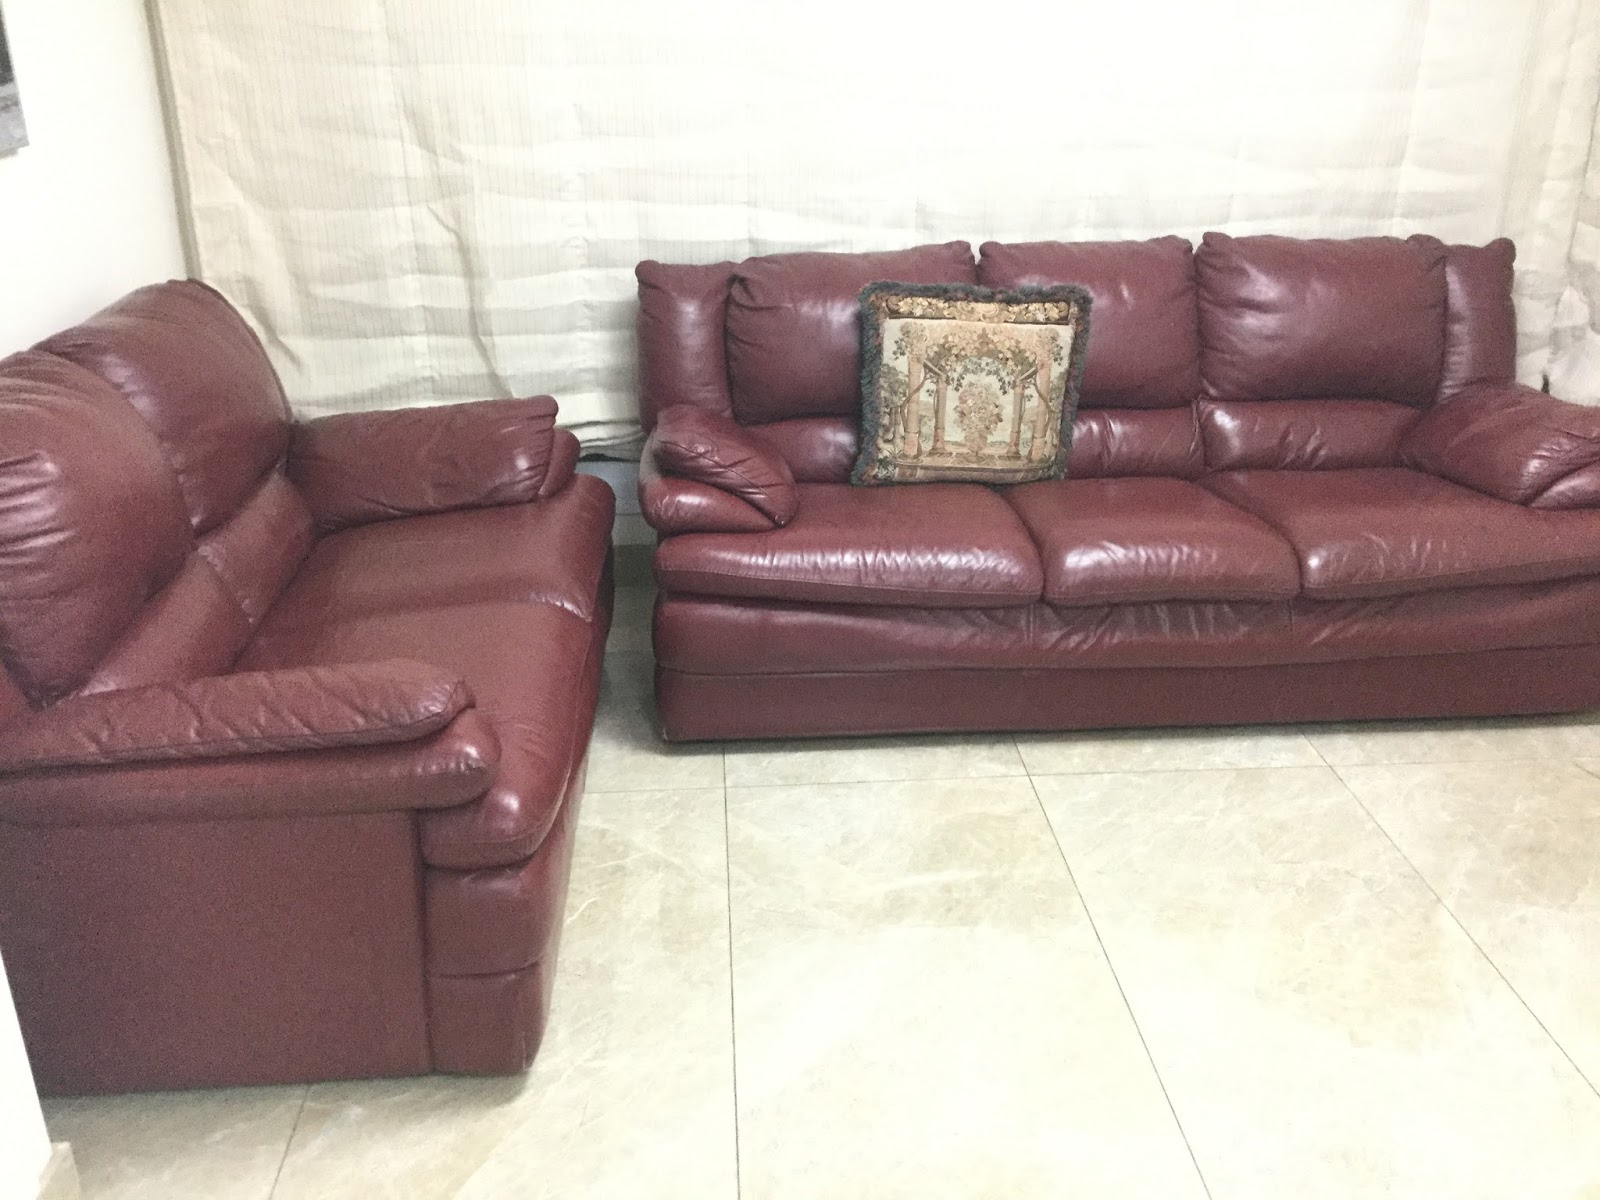 Stupendous 2Nd Hand Furniture Highest Quality Lowest Prices Email Interior Design Ideas Gentotryabchikinfo